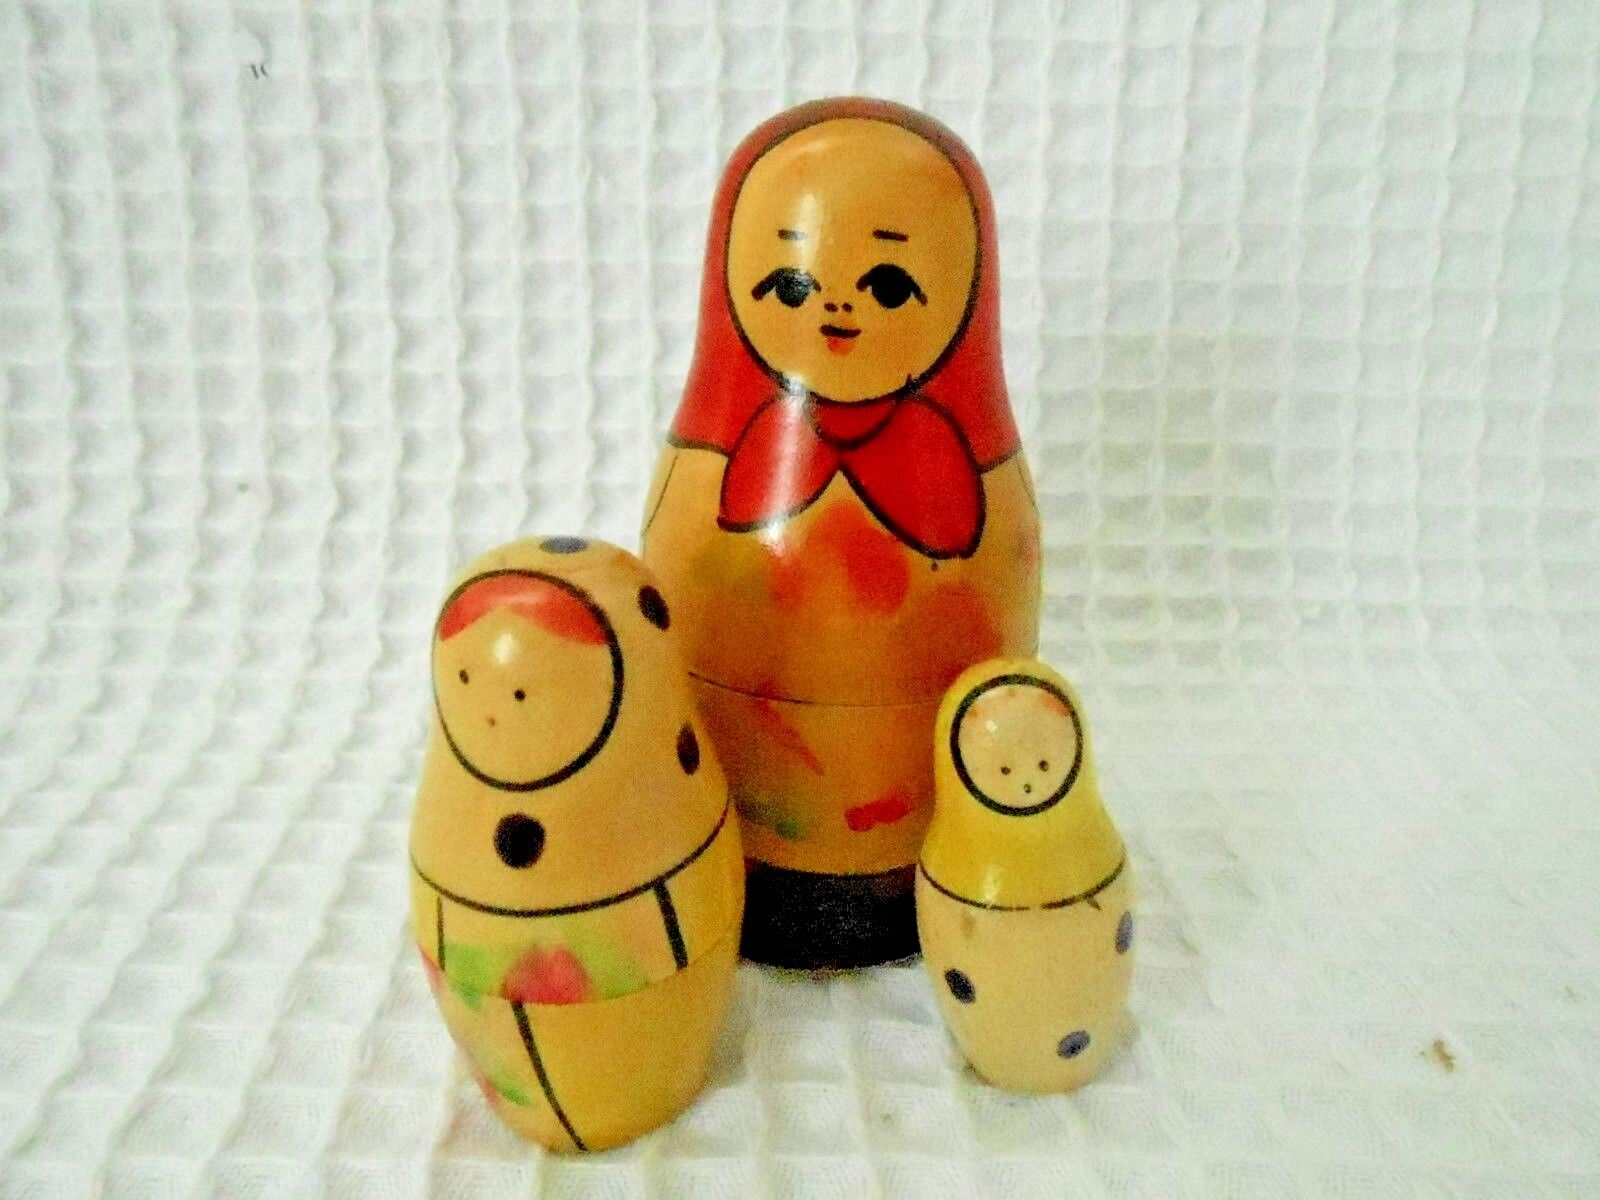 Russian Matryoshka Lot Of 3 Nesting Dolls. - $18.99